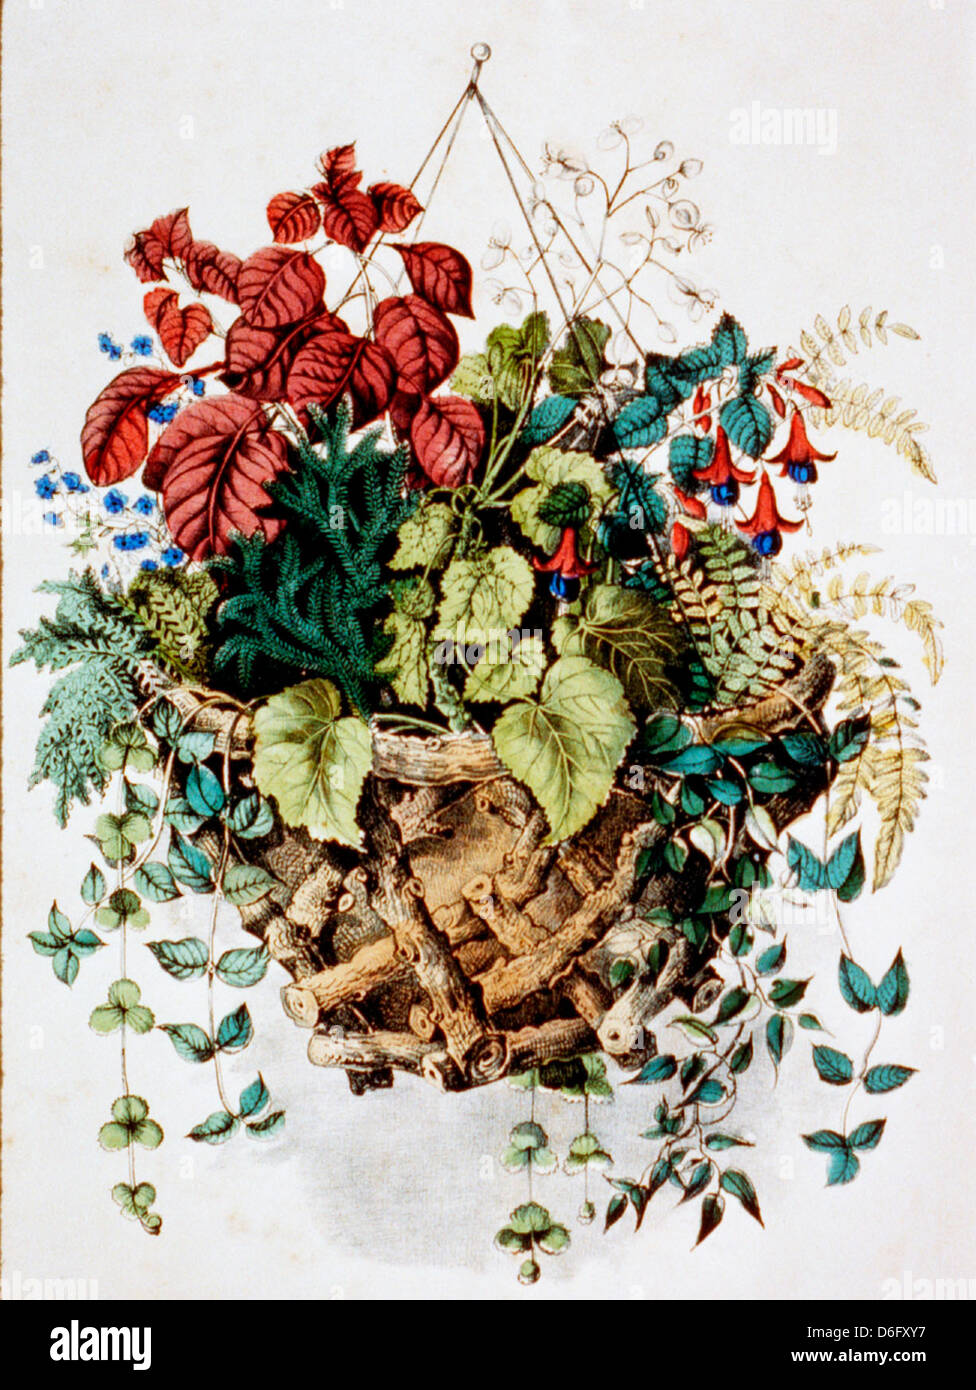 Rustic basket - hand colored lithograph, circa 1870 - Stock Image